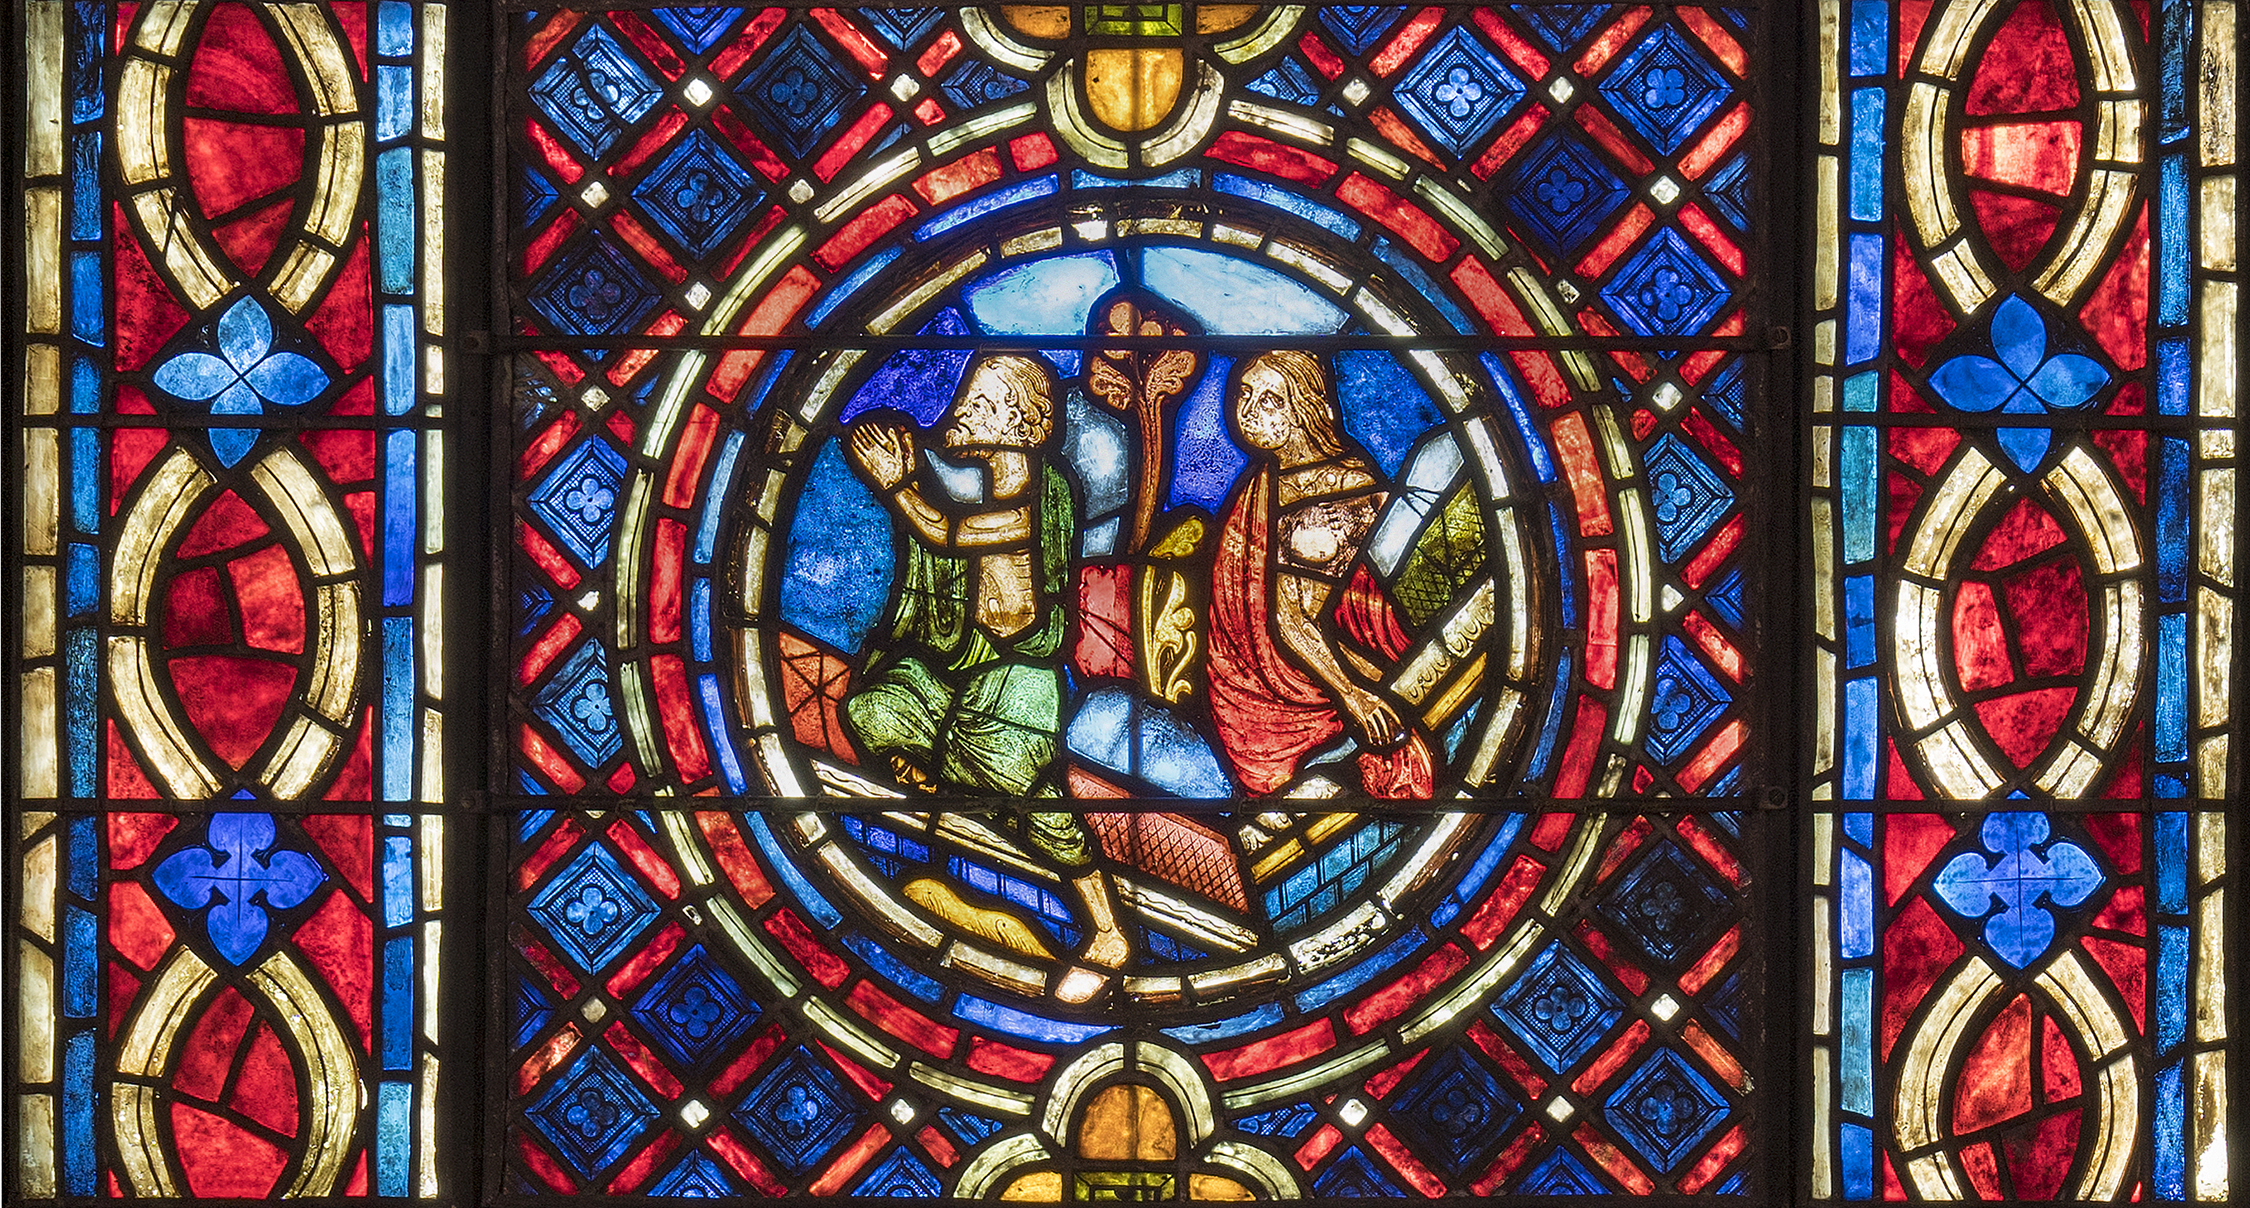 The Resurrected Rising: A man wearing a green burial shroud and a woman wearing a red shroud climb out of their tombs at the Last Judgment. The man is holding his hands in prayer. This thirteenth-century French stained glass roundel, in the collection of Glencairn Museum (ca. 1225, 03.SG.211), originally came from the east rose window of the parish church in Donne-marie-en-Montois (southwest of Provins). The roundel is now installed in one of the lancet windows on the east wall of Glencairn's Great Hall.